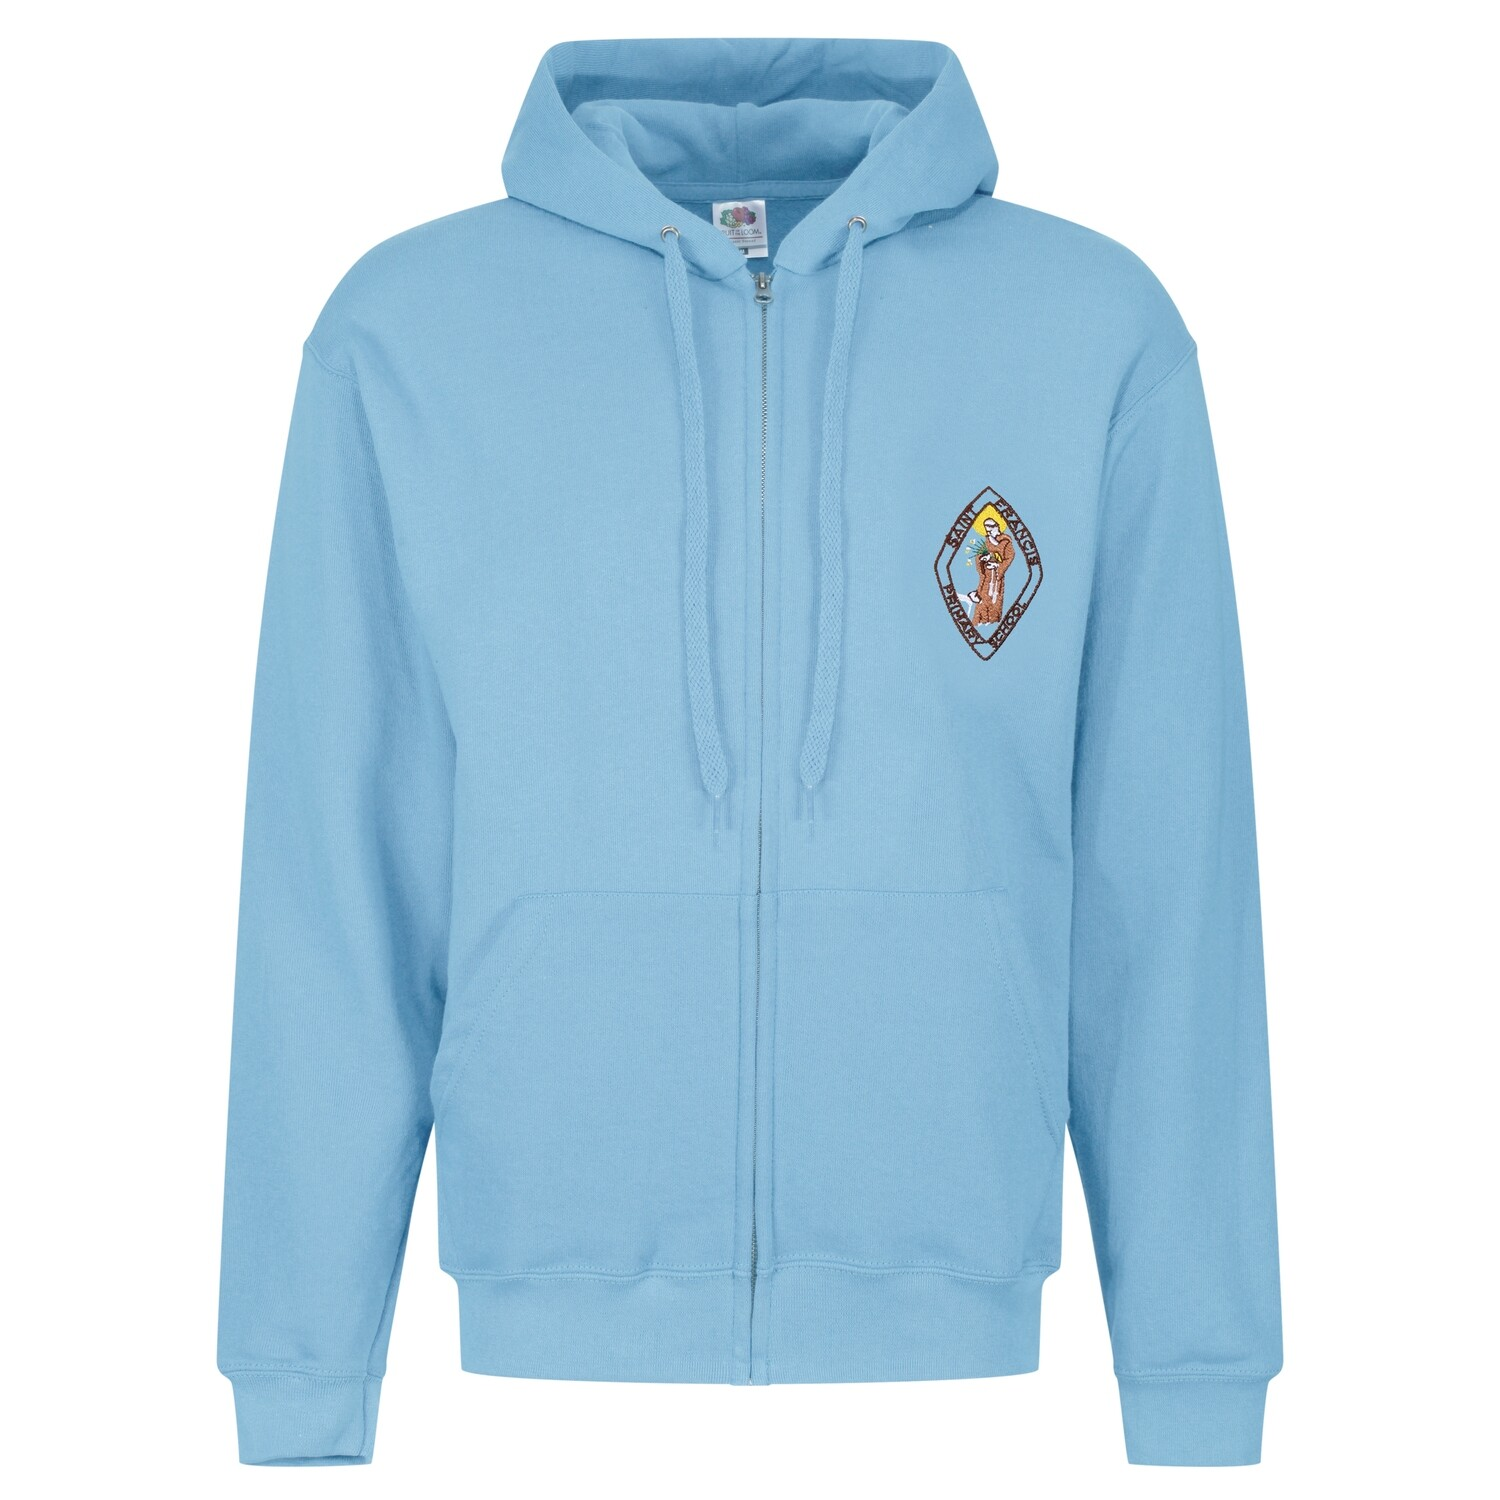 St Francis Primary Staff ZIPPER Hoody (Unisex) (RCSGD58)